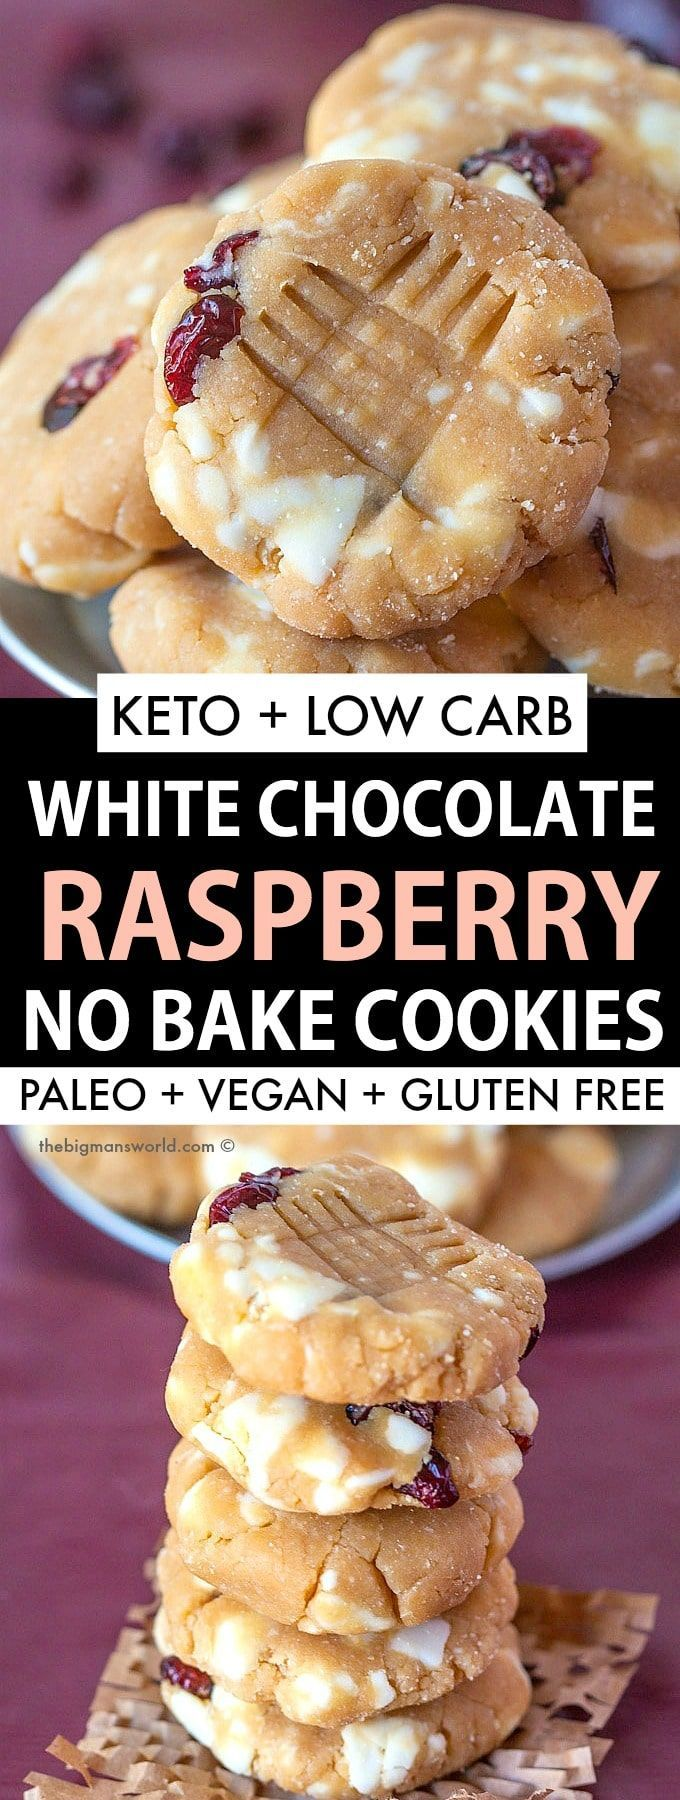 No Bake White Chocolate And Raspberry Cookies Recipe That Is Keto Sugar Free Low Carb And Made With In 2020 Raspberry Cookie Recipes Raspberry Cookies Healthy Baking